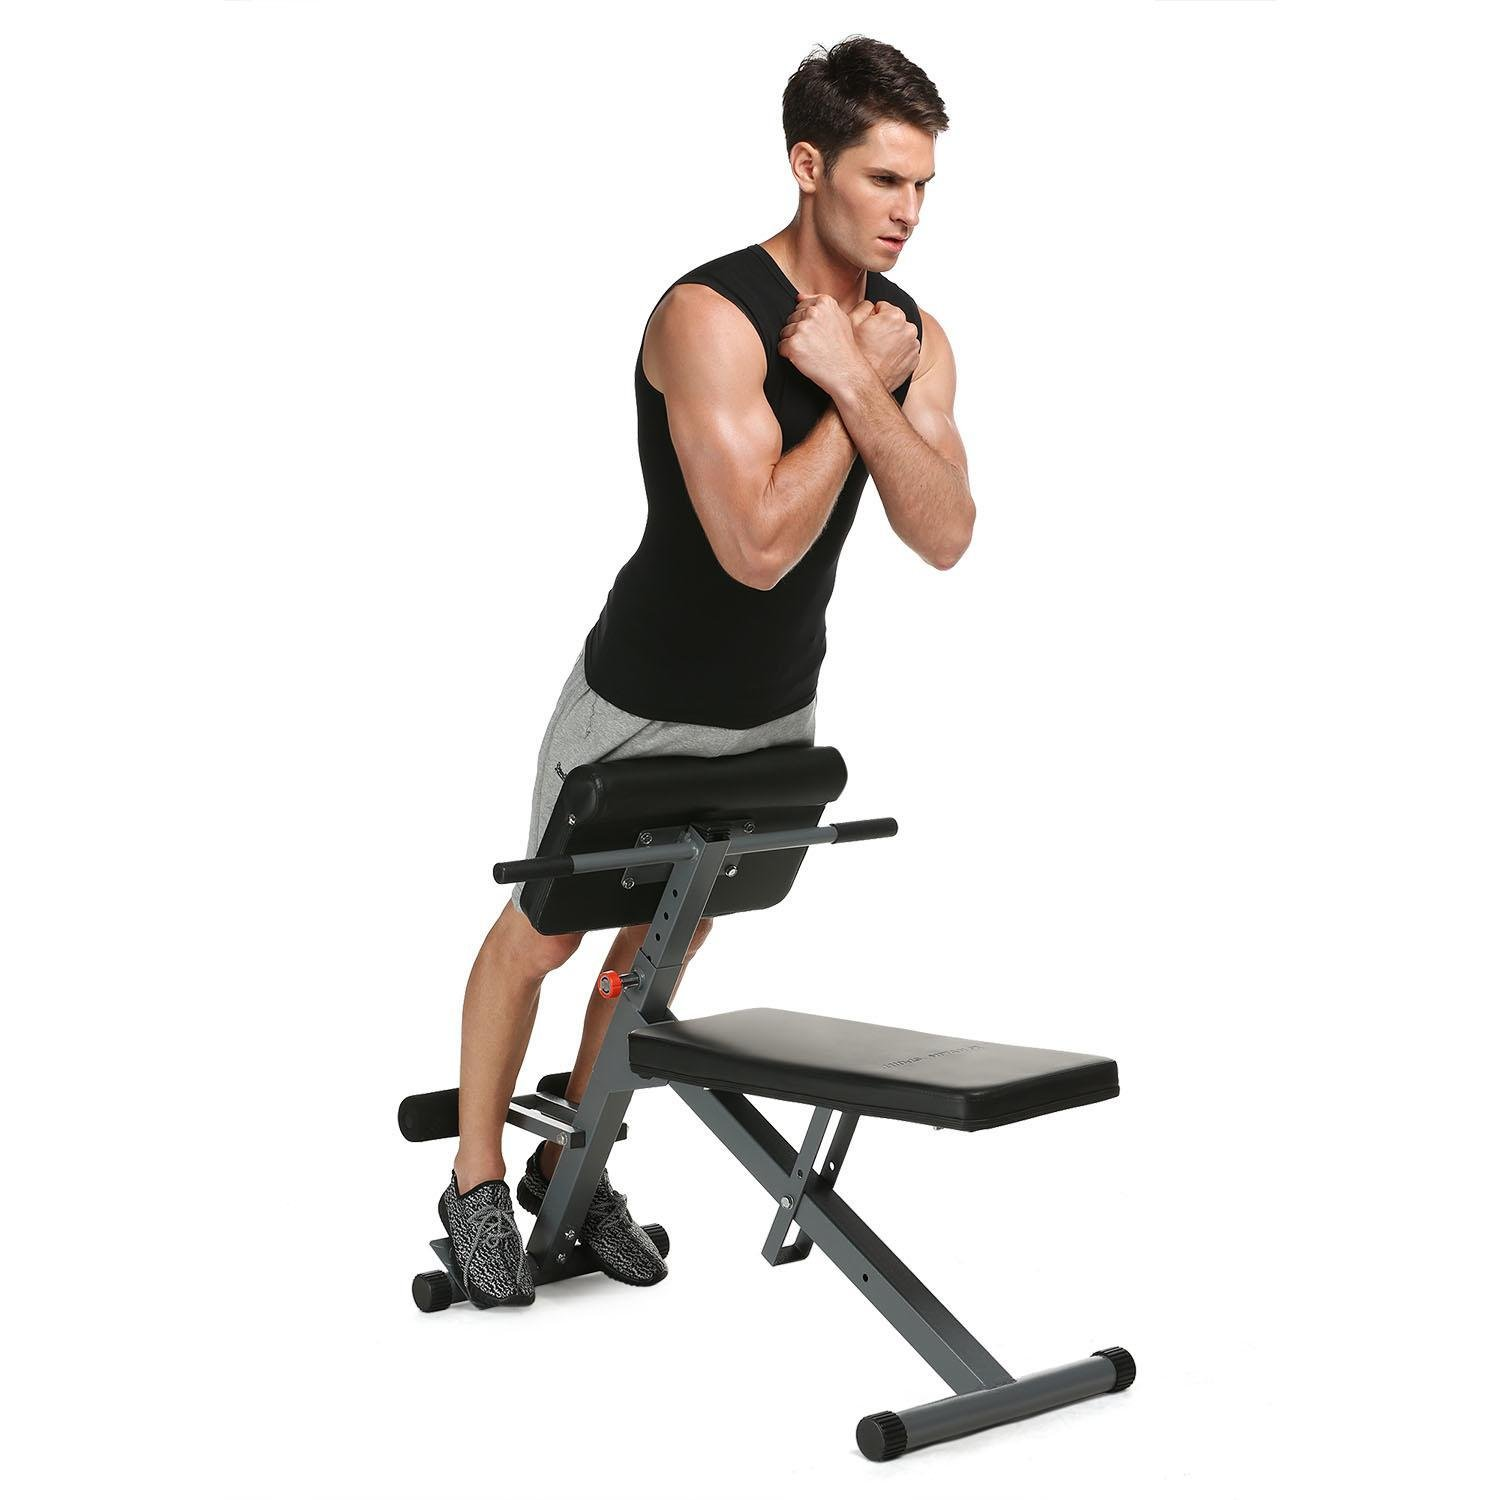 Dtemple Foldable Exercise Bench for Weight Training & Ab Exercises by dtemple